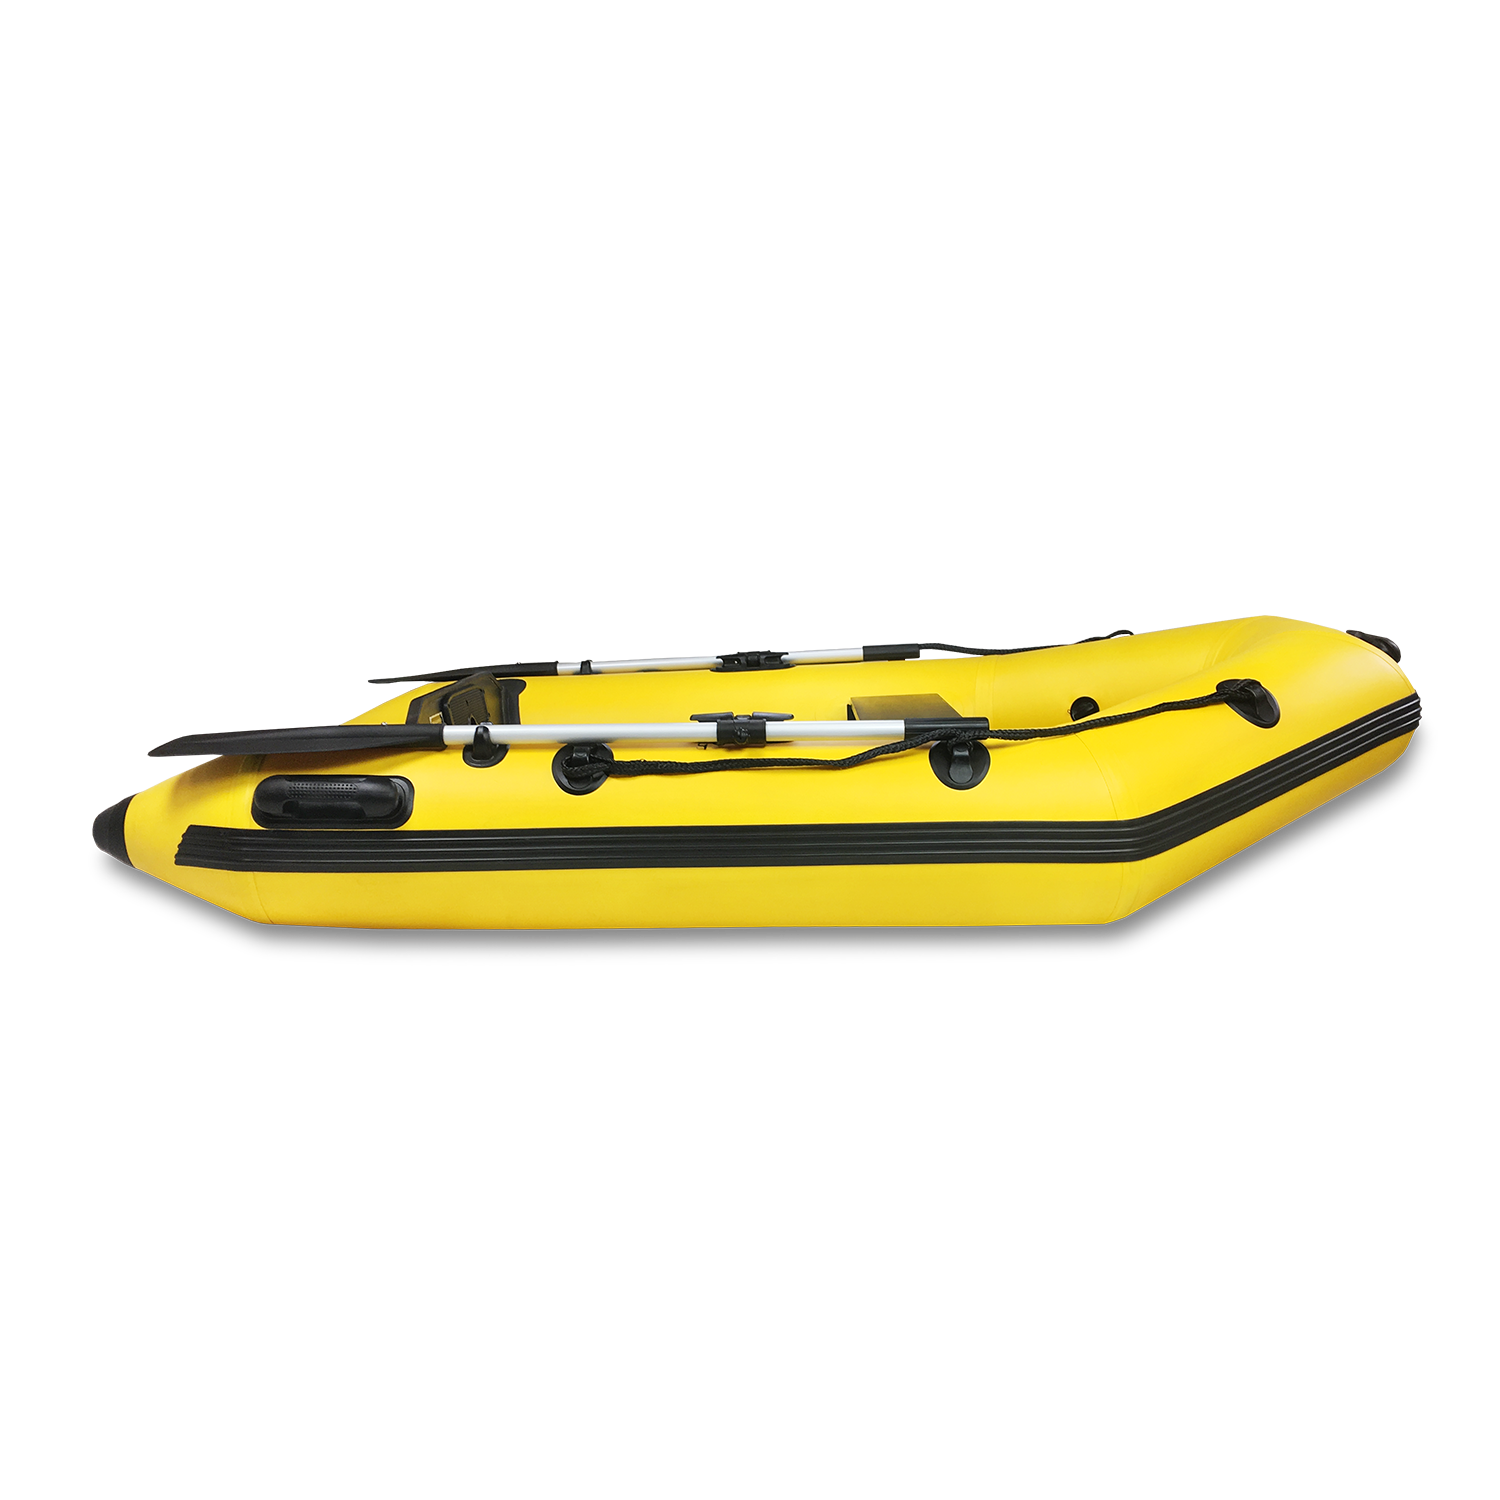 230Pro Inflatable Dinghy - Yellow